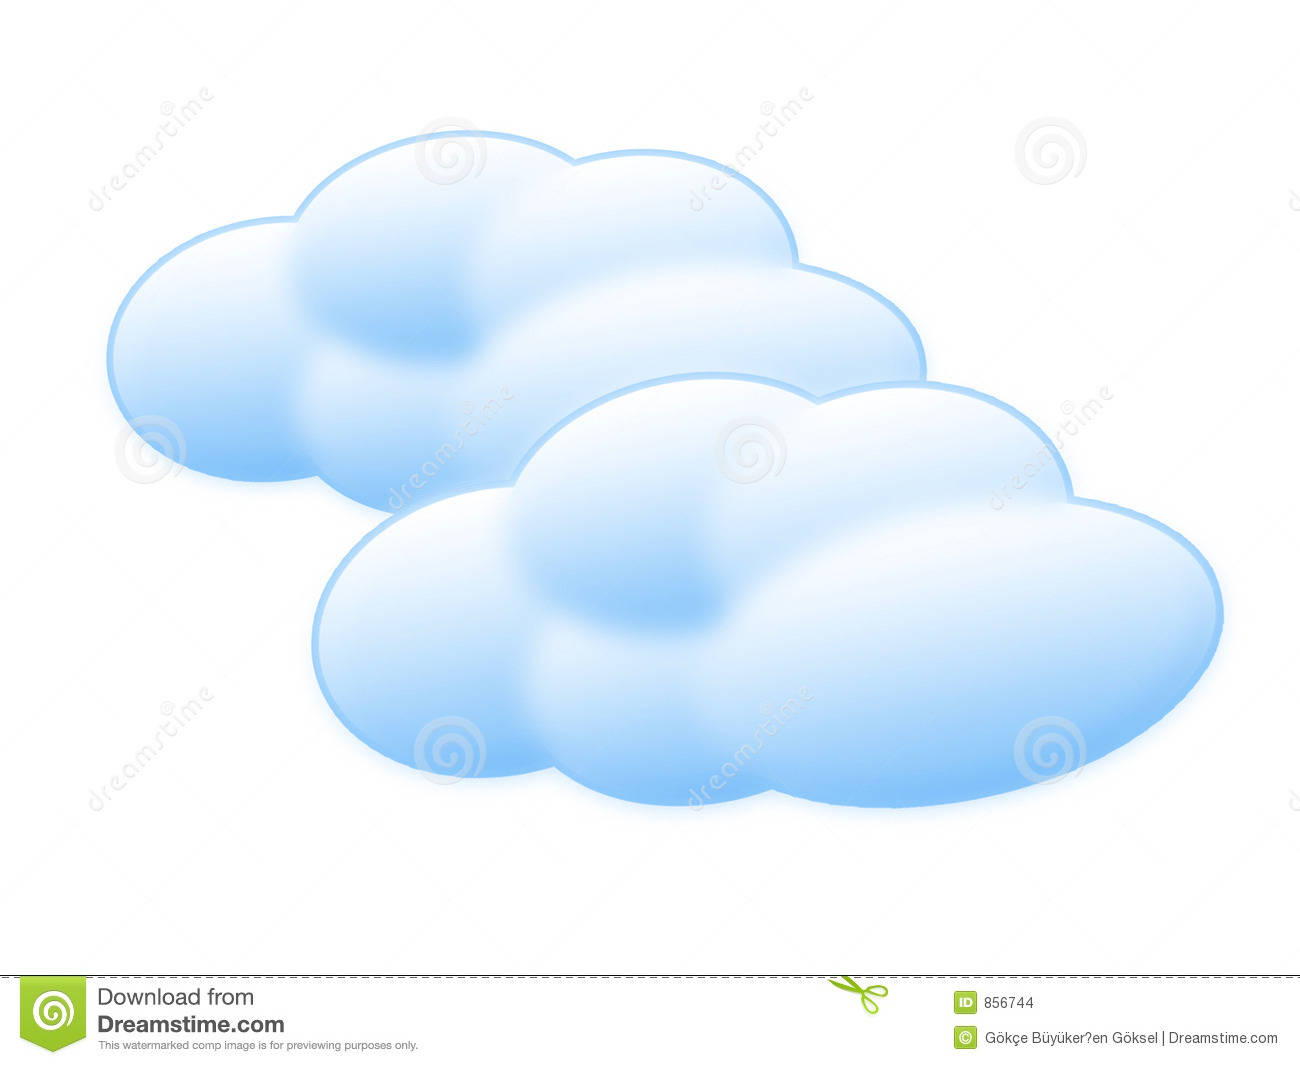 Nuages de dessin anim illustration stock illustration du - Dessin de nuage ...